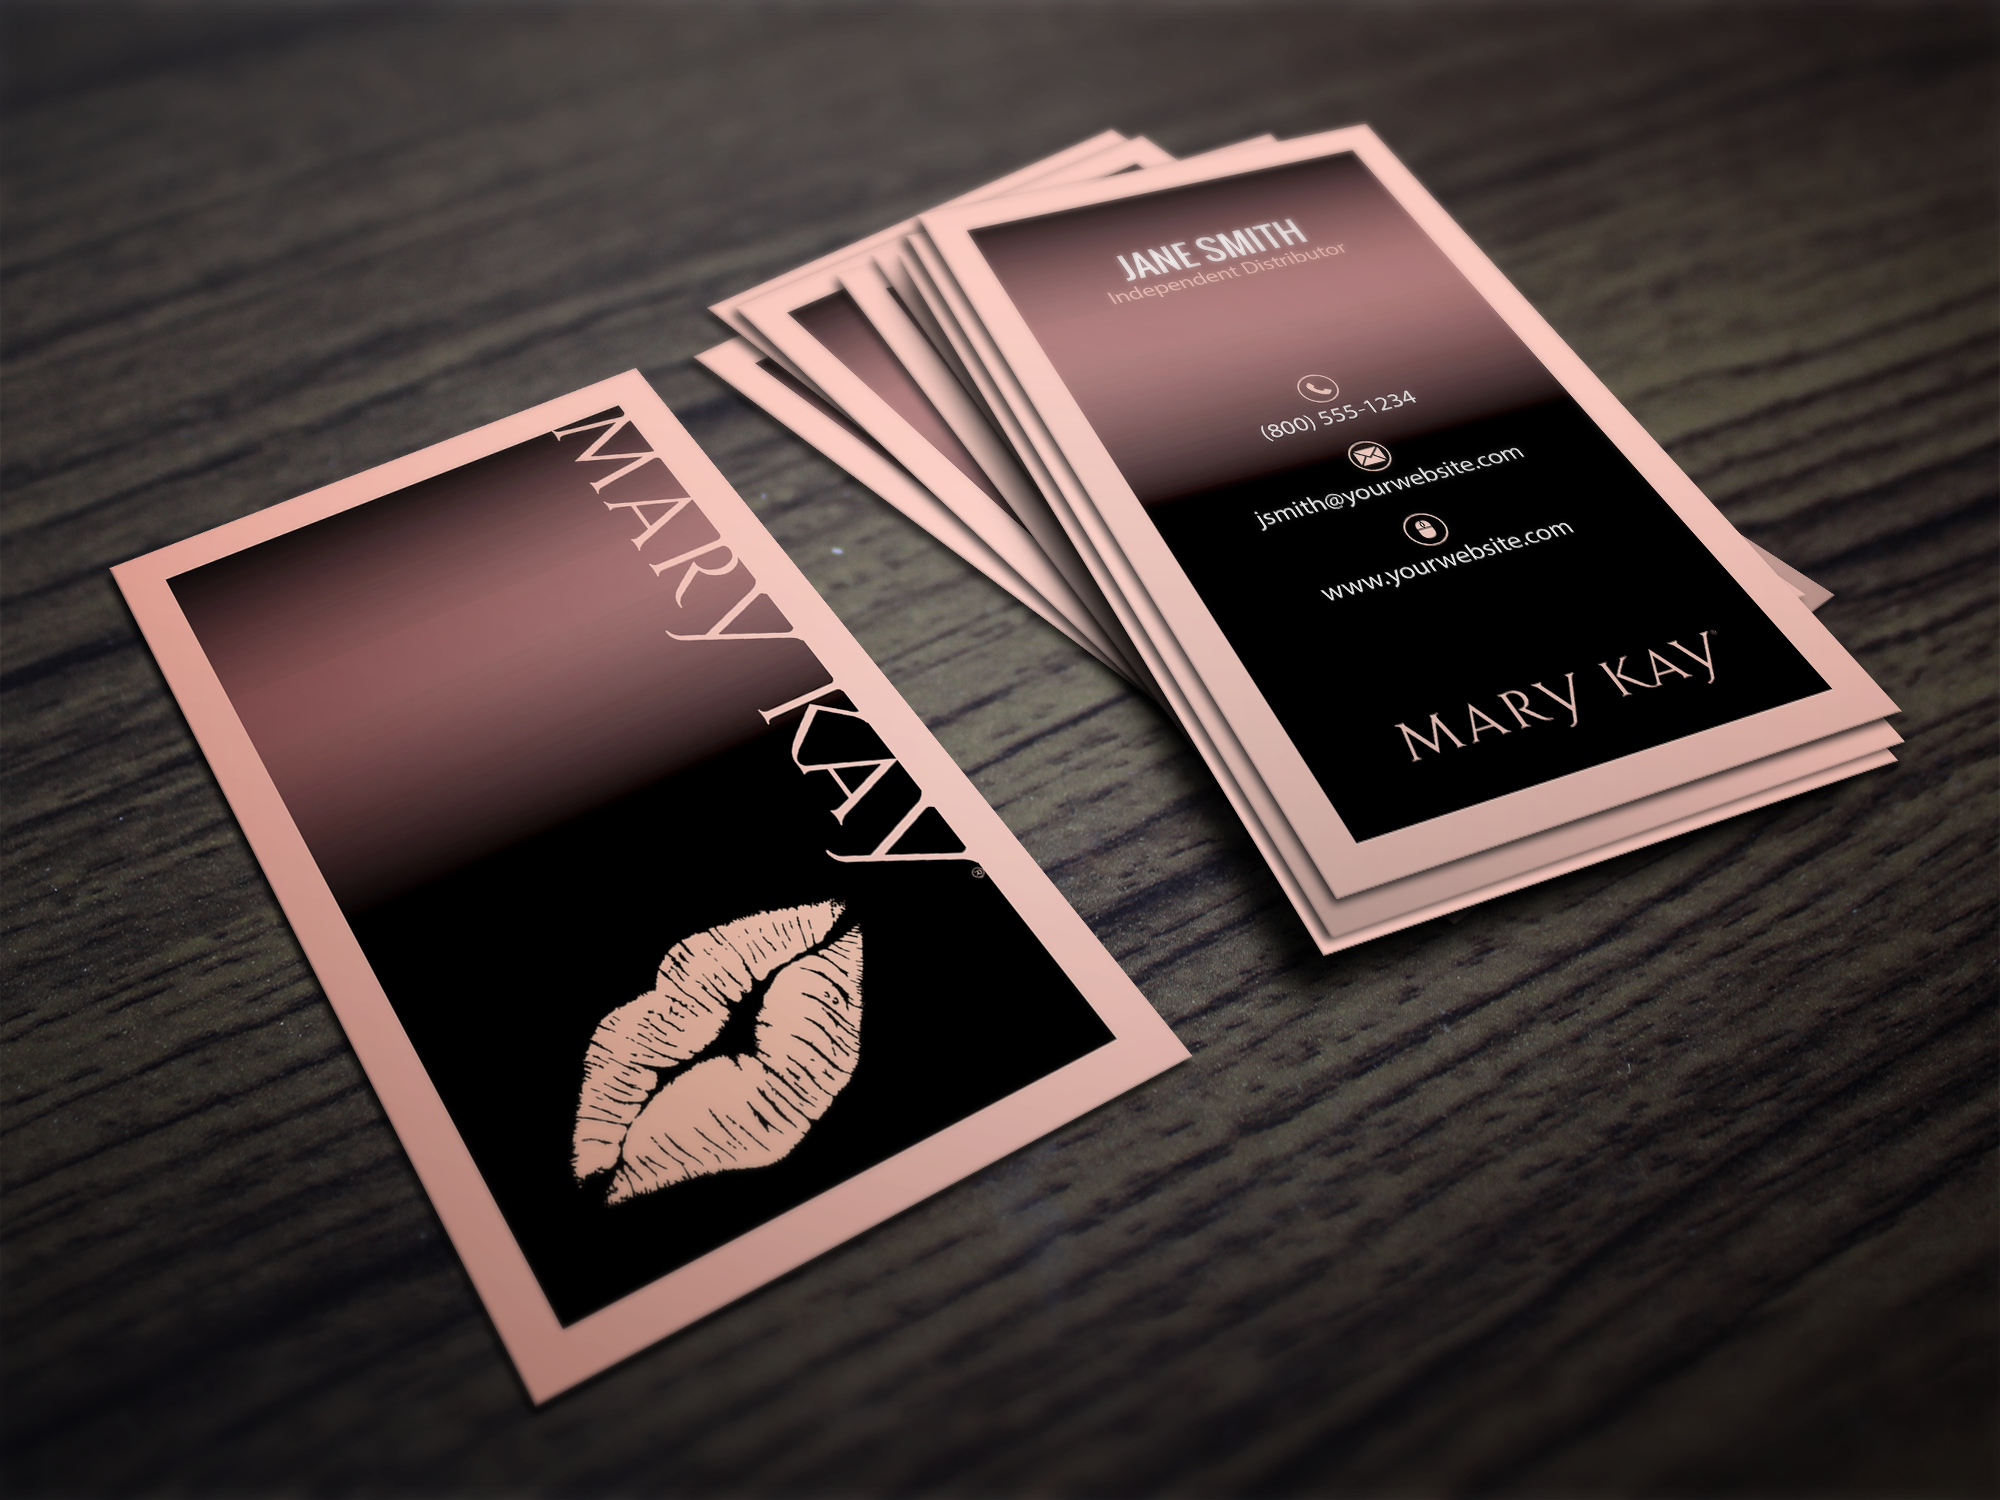 Mary kay business cards pinterest mary kay cosmetics mary kay cute business card template designs for mary kay cosmetic consultants cute pink kiss businesscard marykay graphicdesign fbccfo Image collections